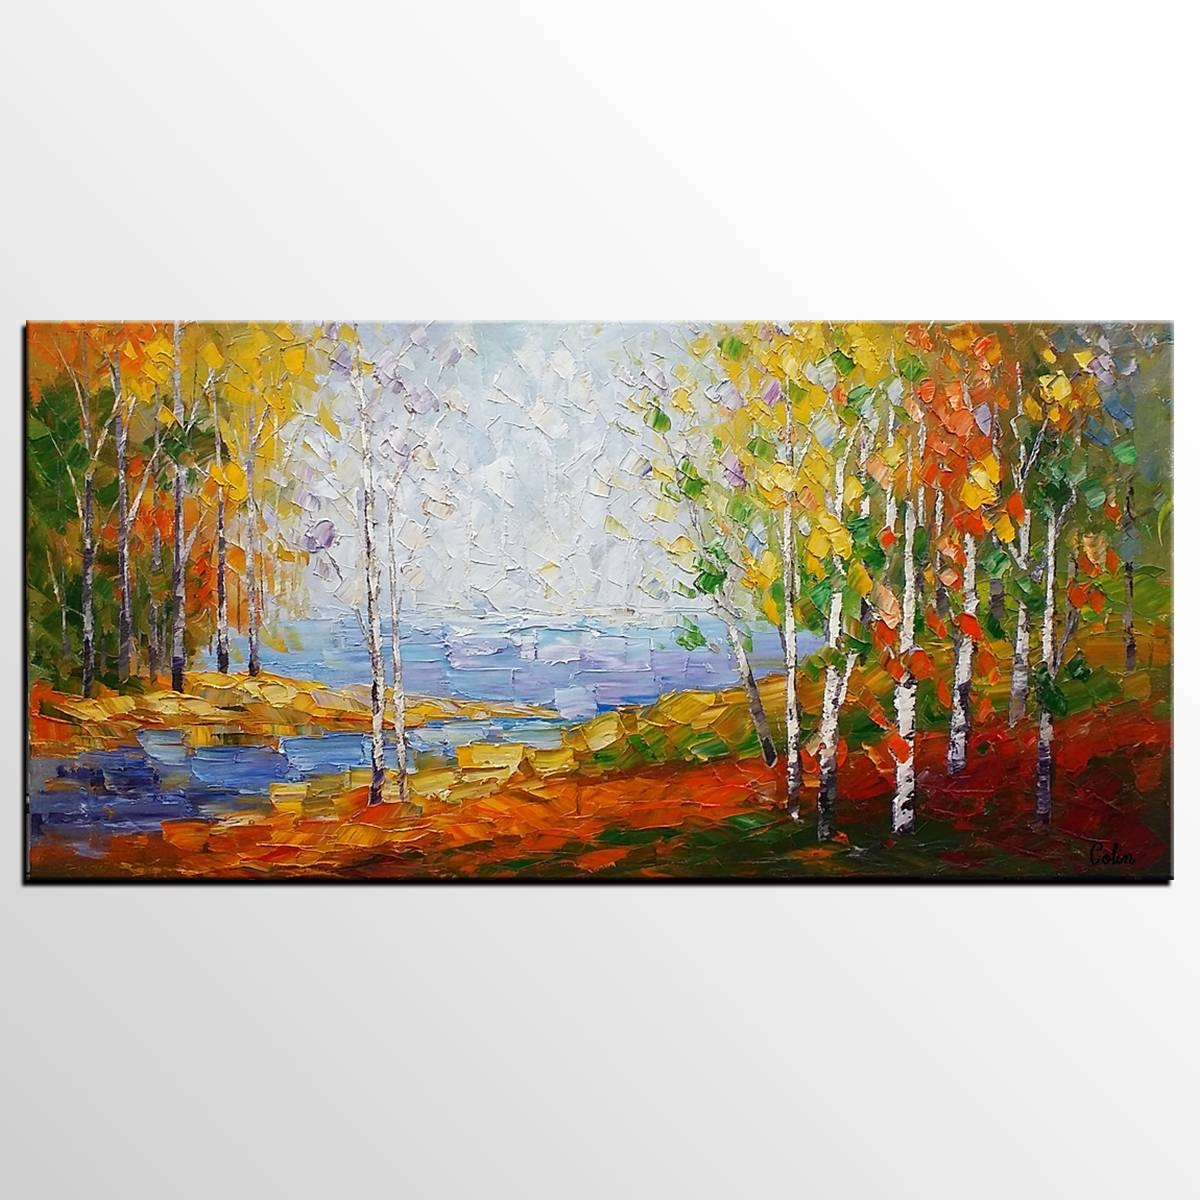 Canvas Painting, Bedroom Wall Art, Landscape Painting, Large Art Within Most Current Canvas Landscape Wall Art (View 8 of 20)